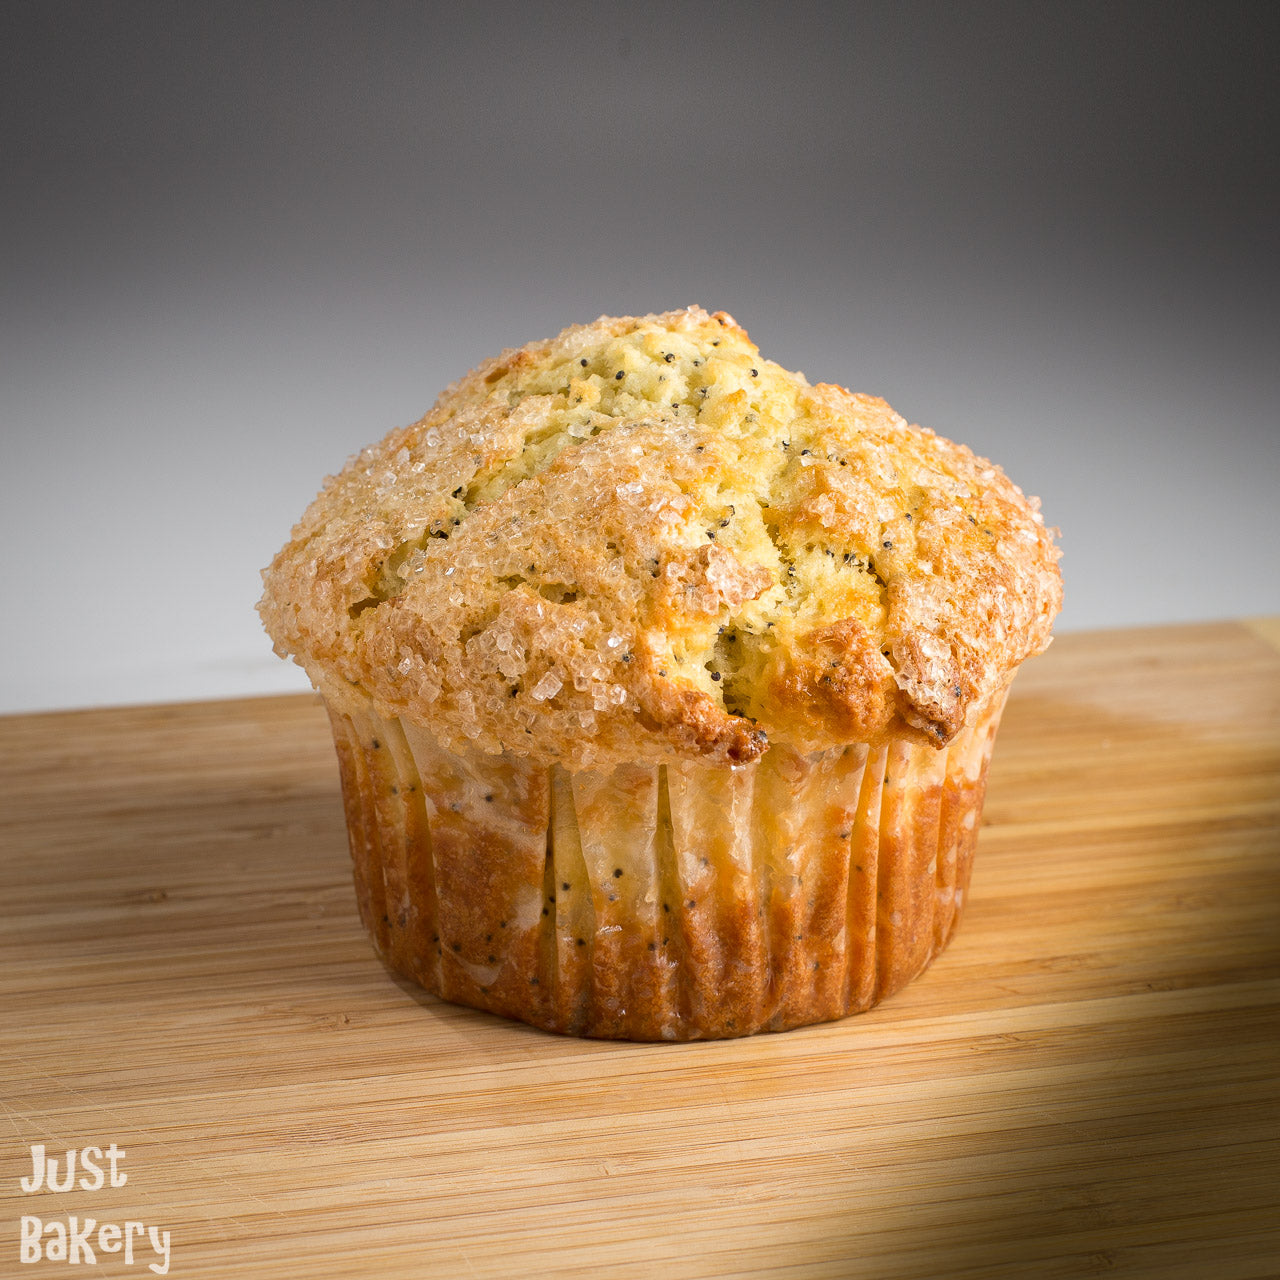 Lemon Poppy Seed Muffin (2 ct)